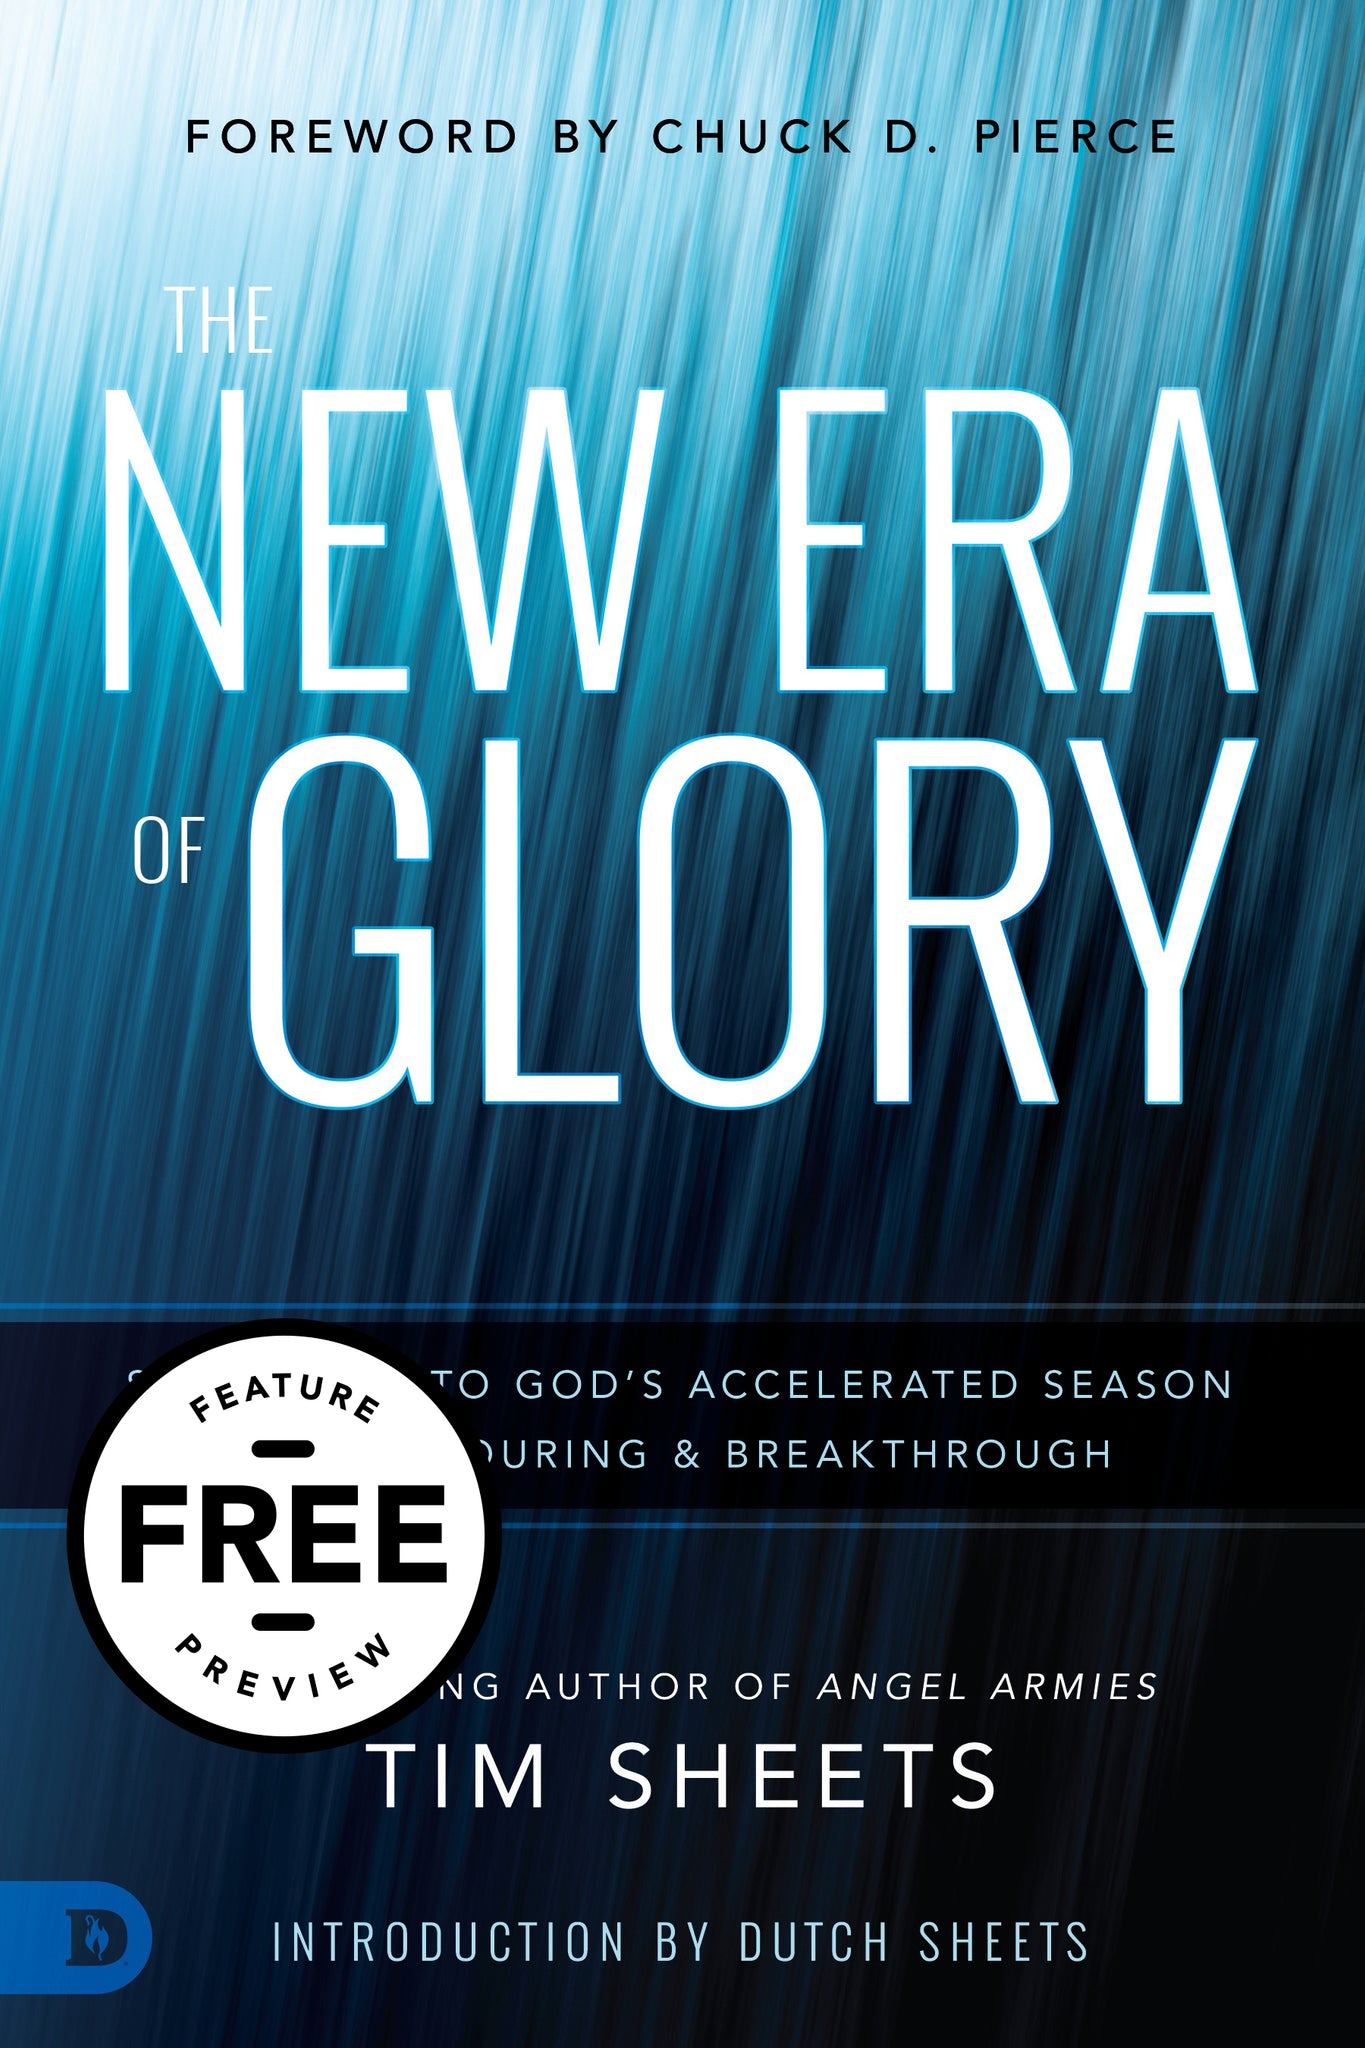 The New Era of Glory Free Feature Message (PDF Download)